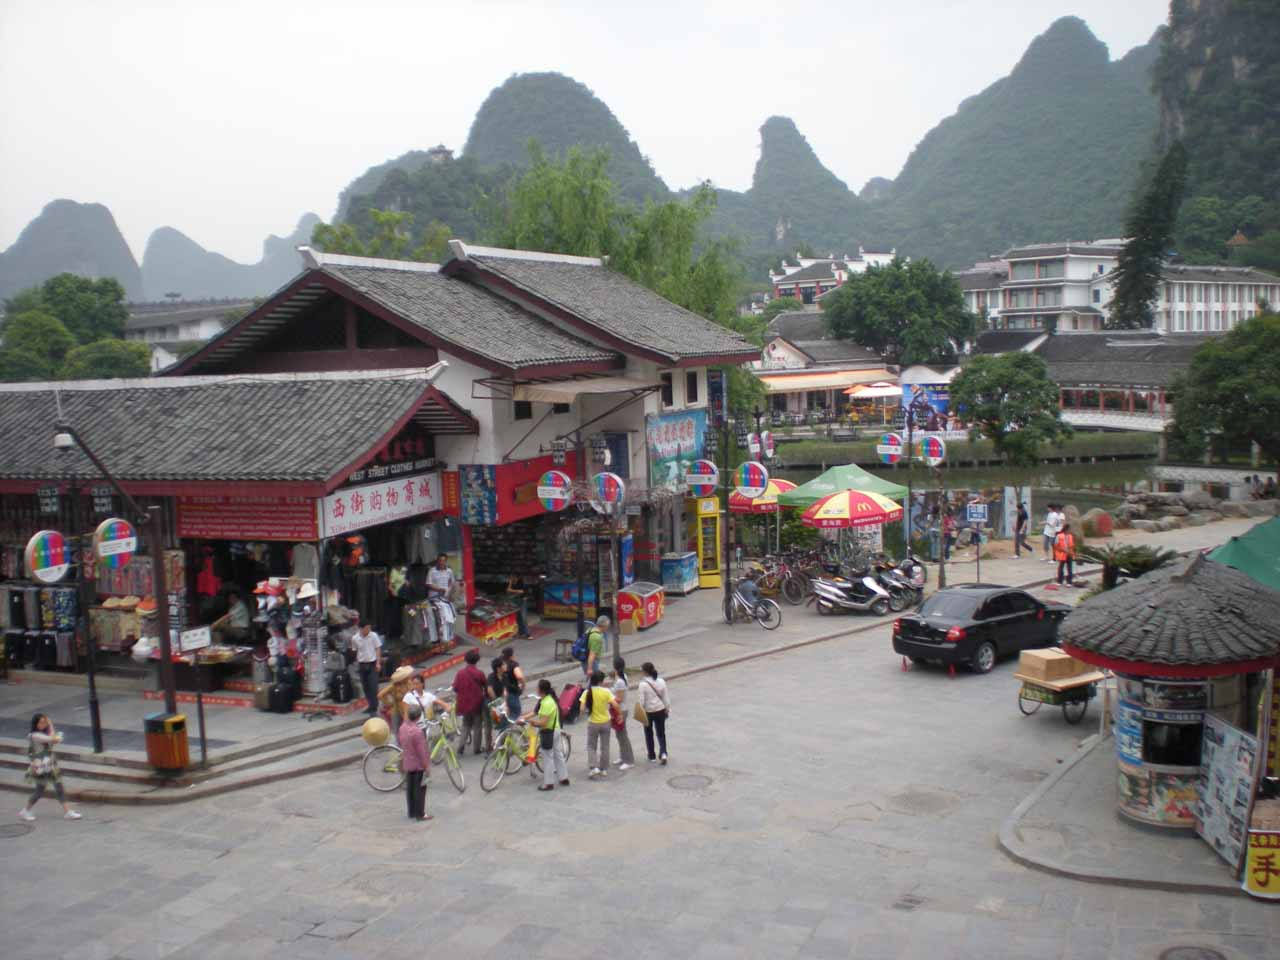 View from the Mei You Restaurant in Yangshuo